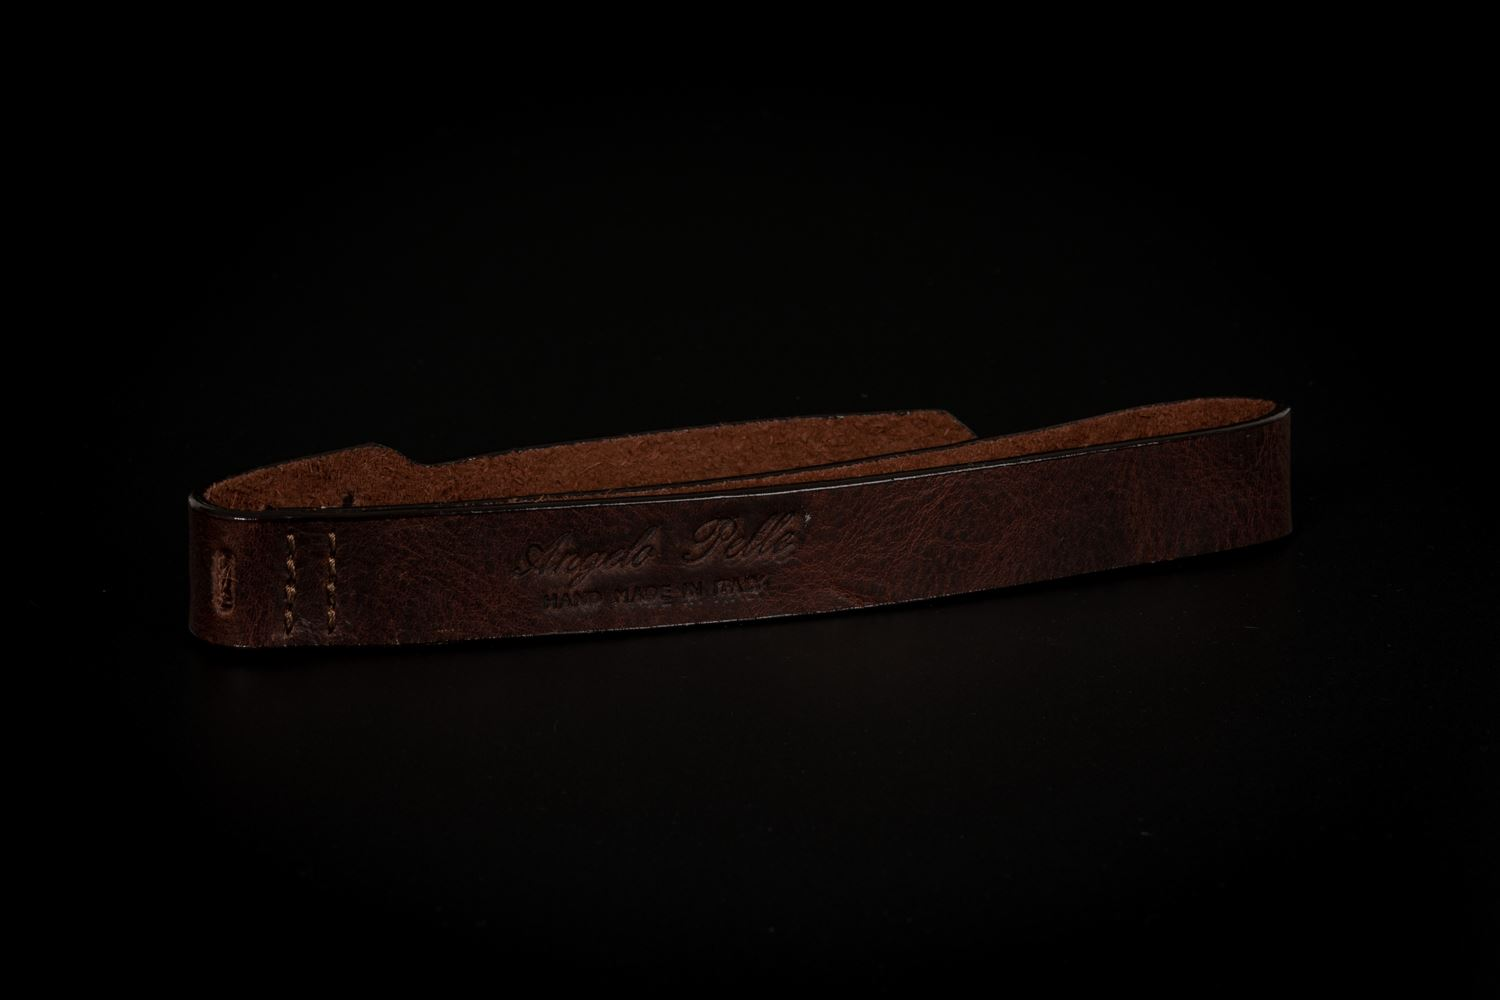 Picture of Angelo Pelle Wrist Strap, SL - Moka Brown